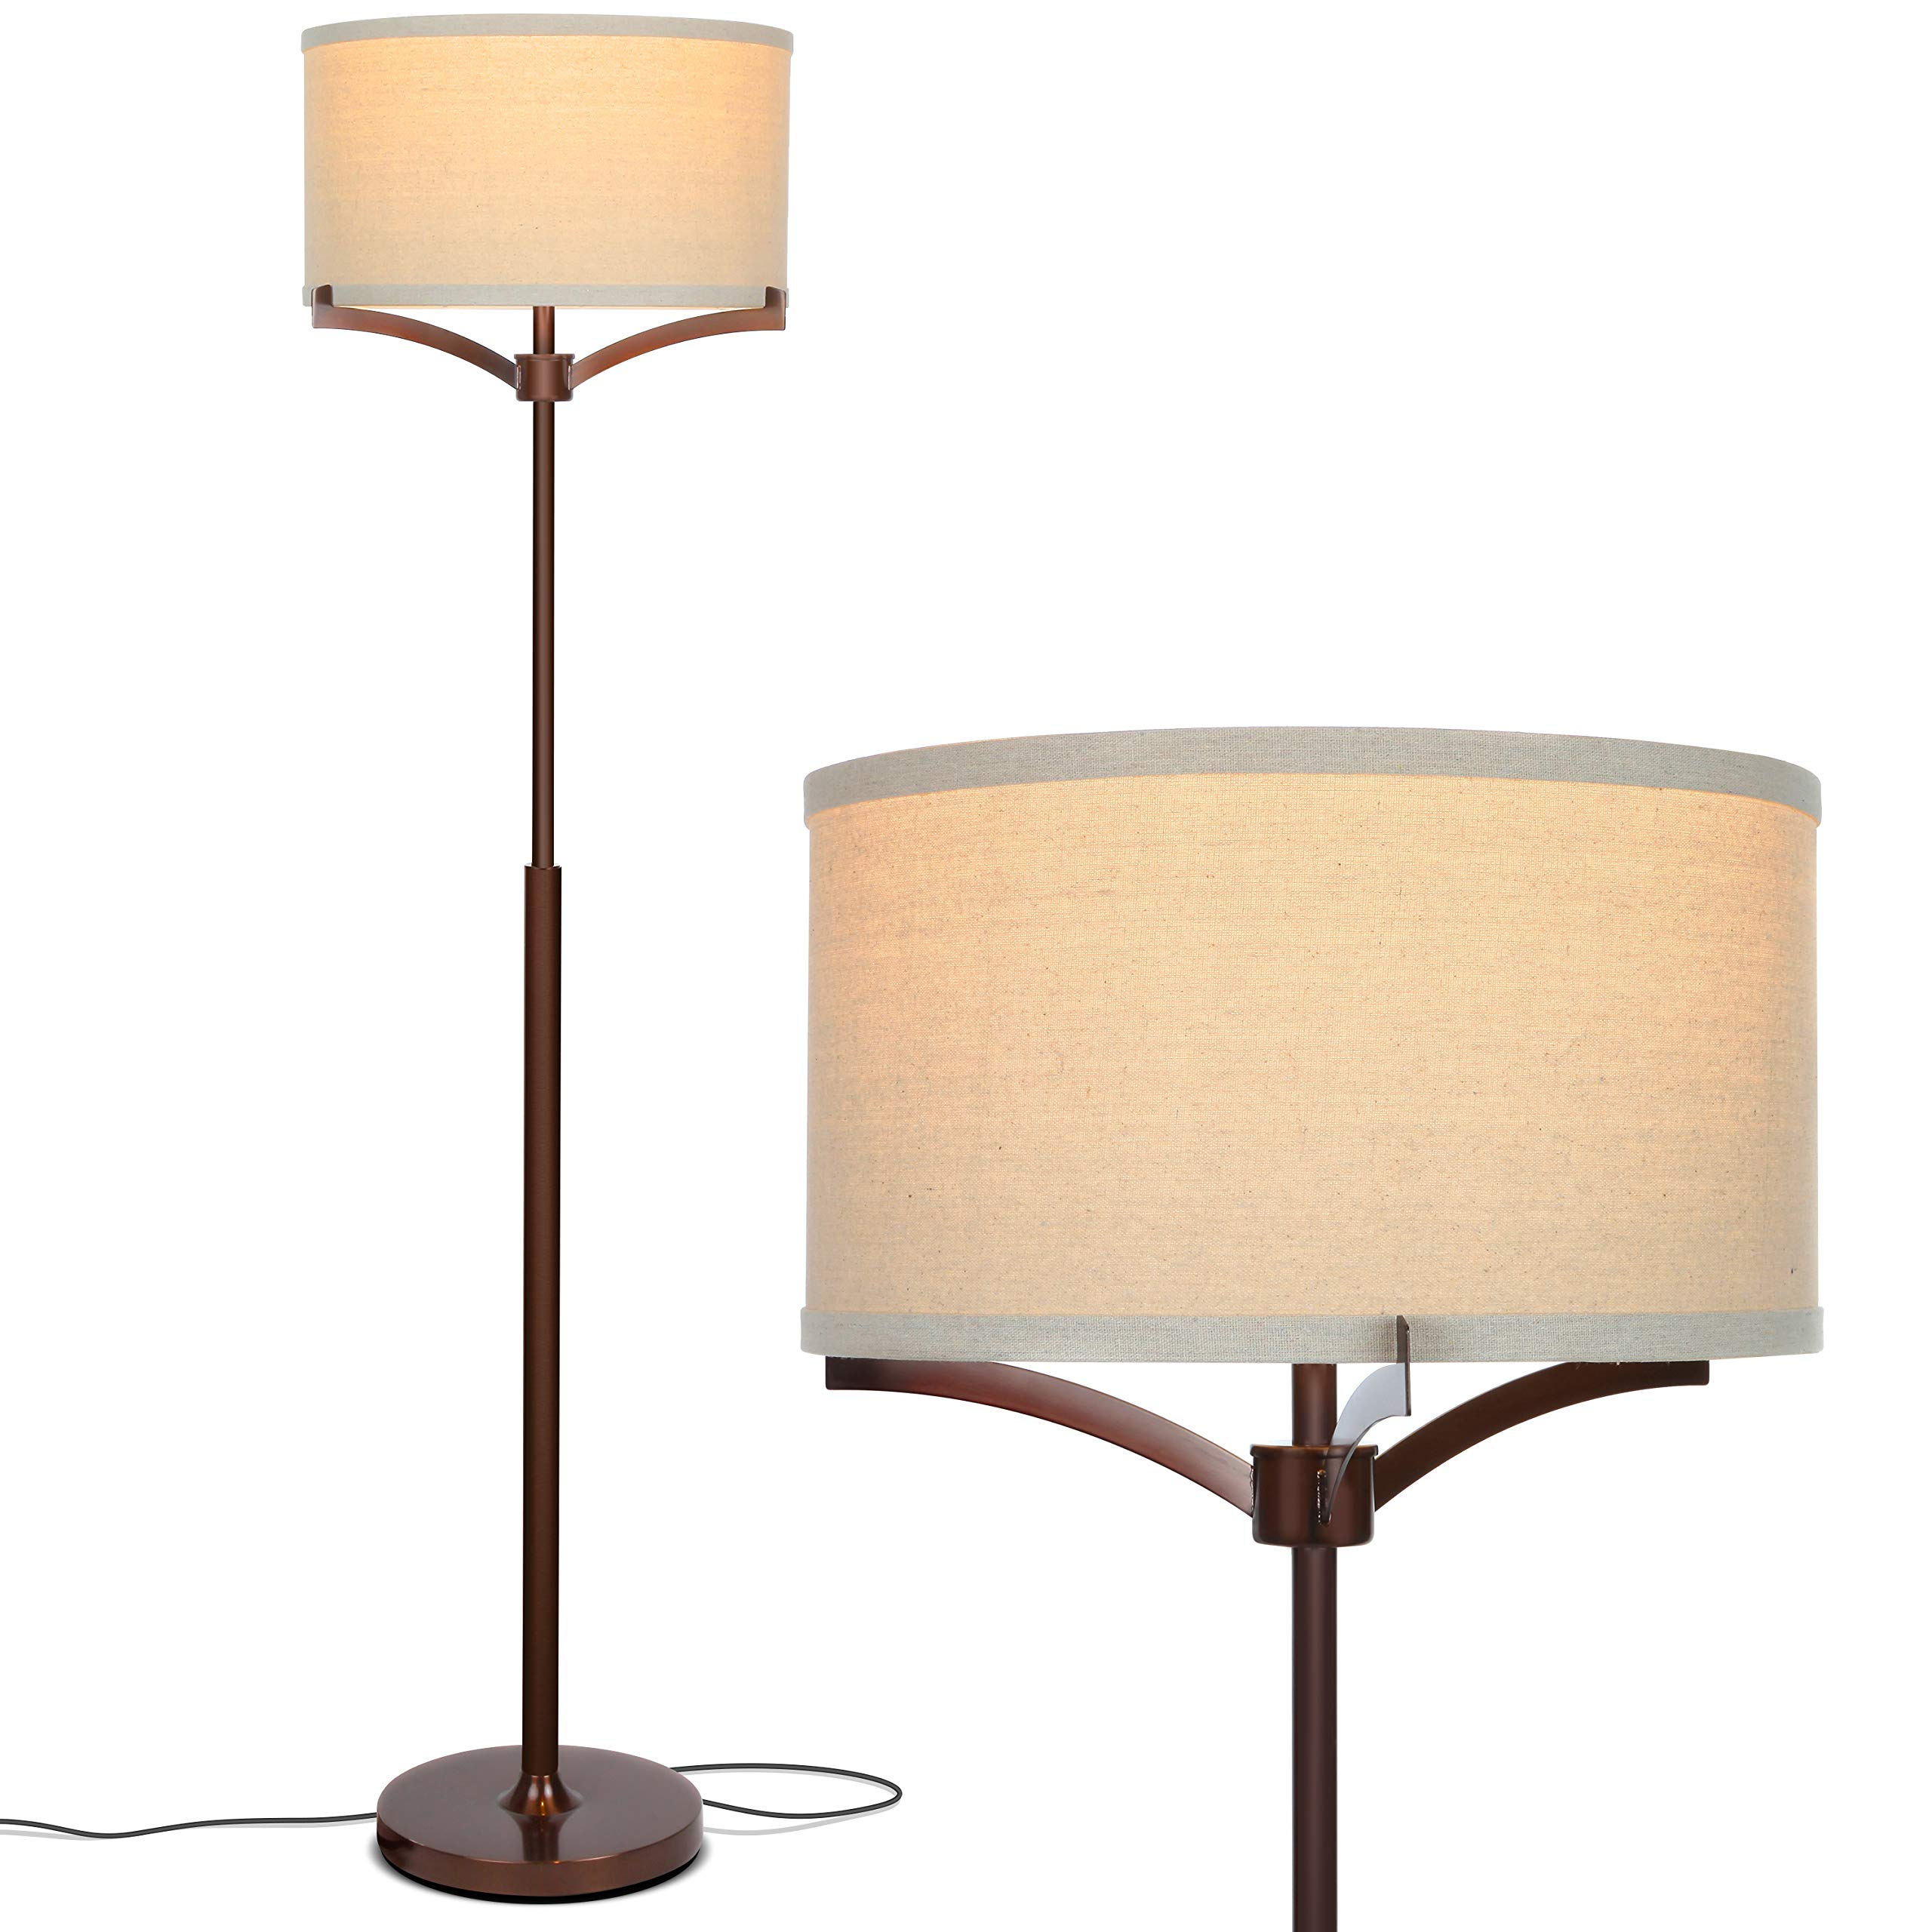 Brightech Elijah LED Floor Lamp - Free Standing Pole Light for Living Room or Office - Modern Tall Reading Light with Drum Shade - LED Bulb Included - Oil Brushed Bronze